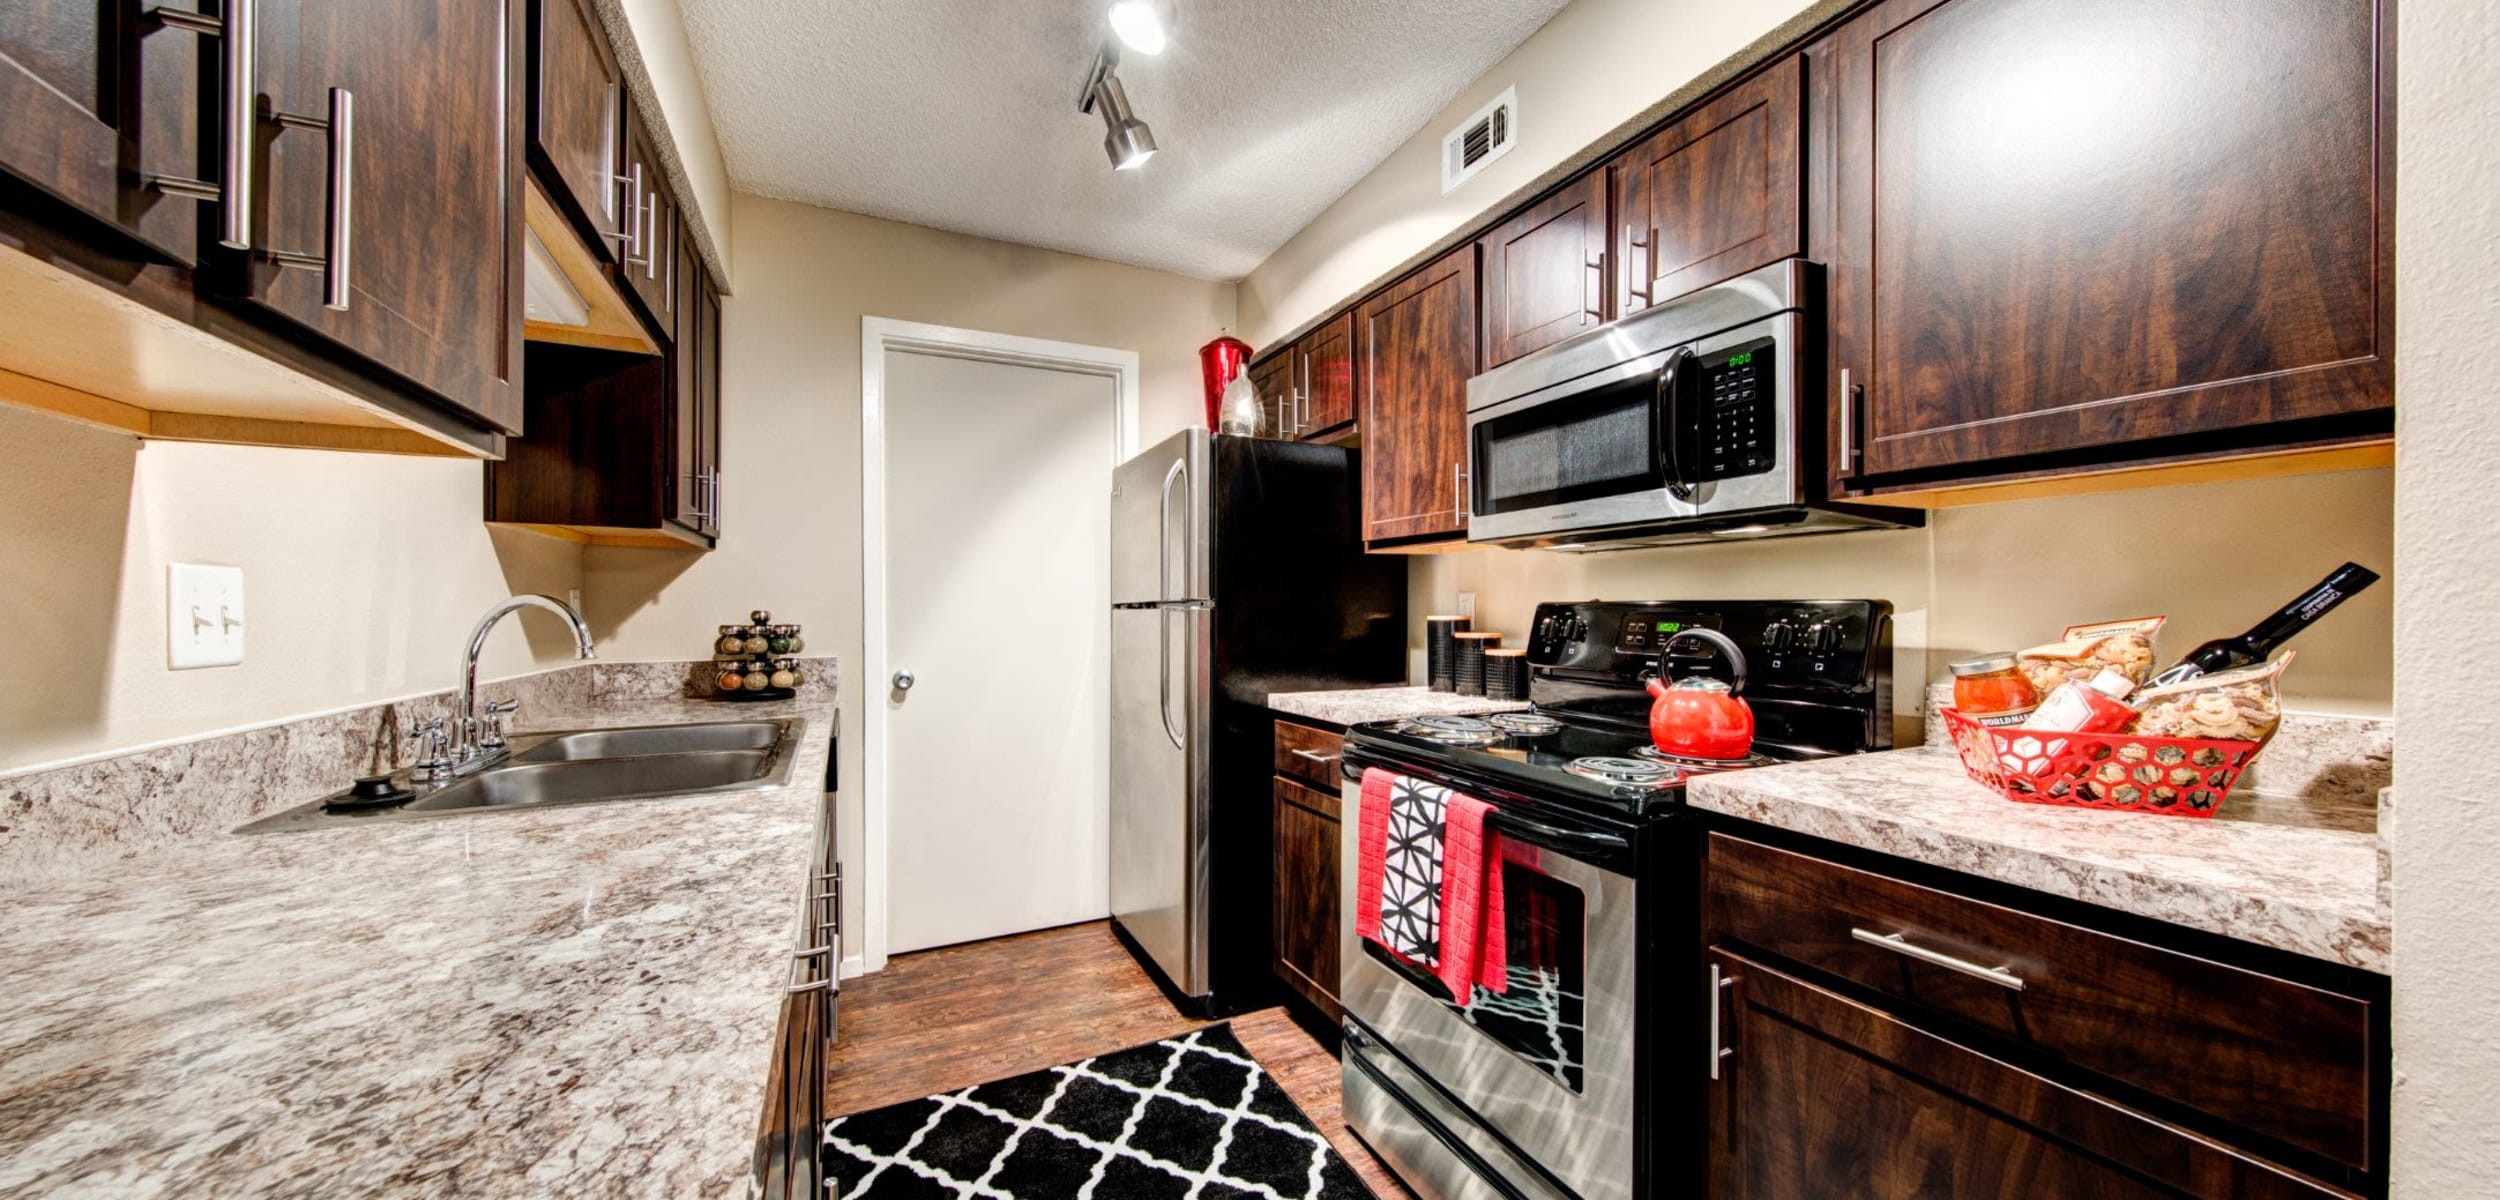 Modern kitchen with stainless steel appliances at The Park at Flower Mound in Flower Mound, Texas